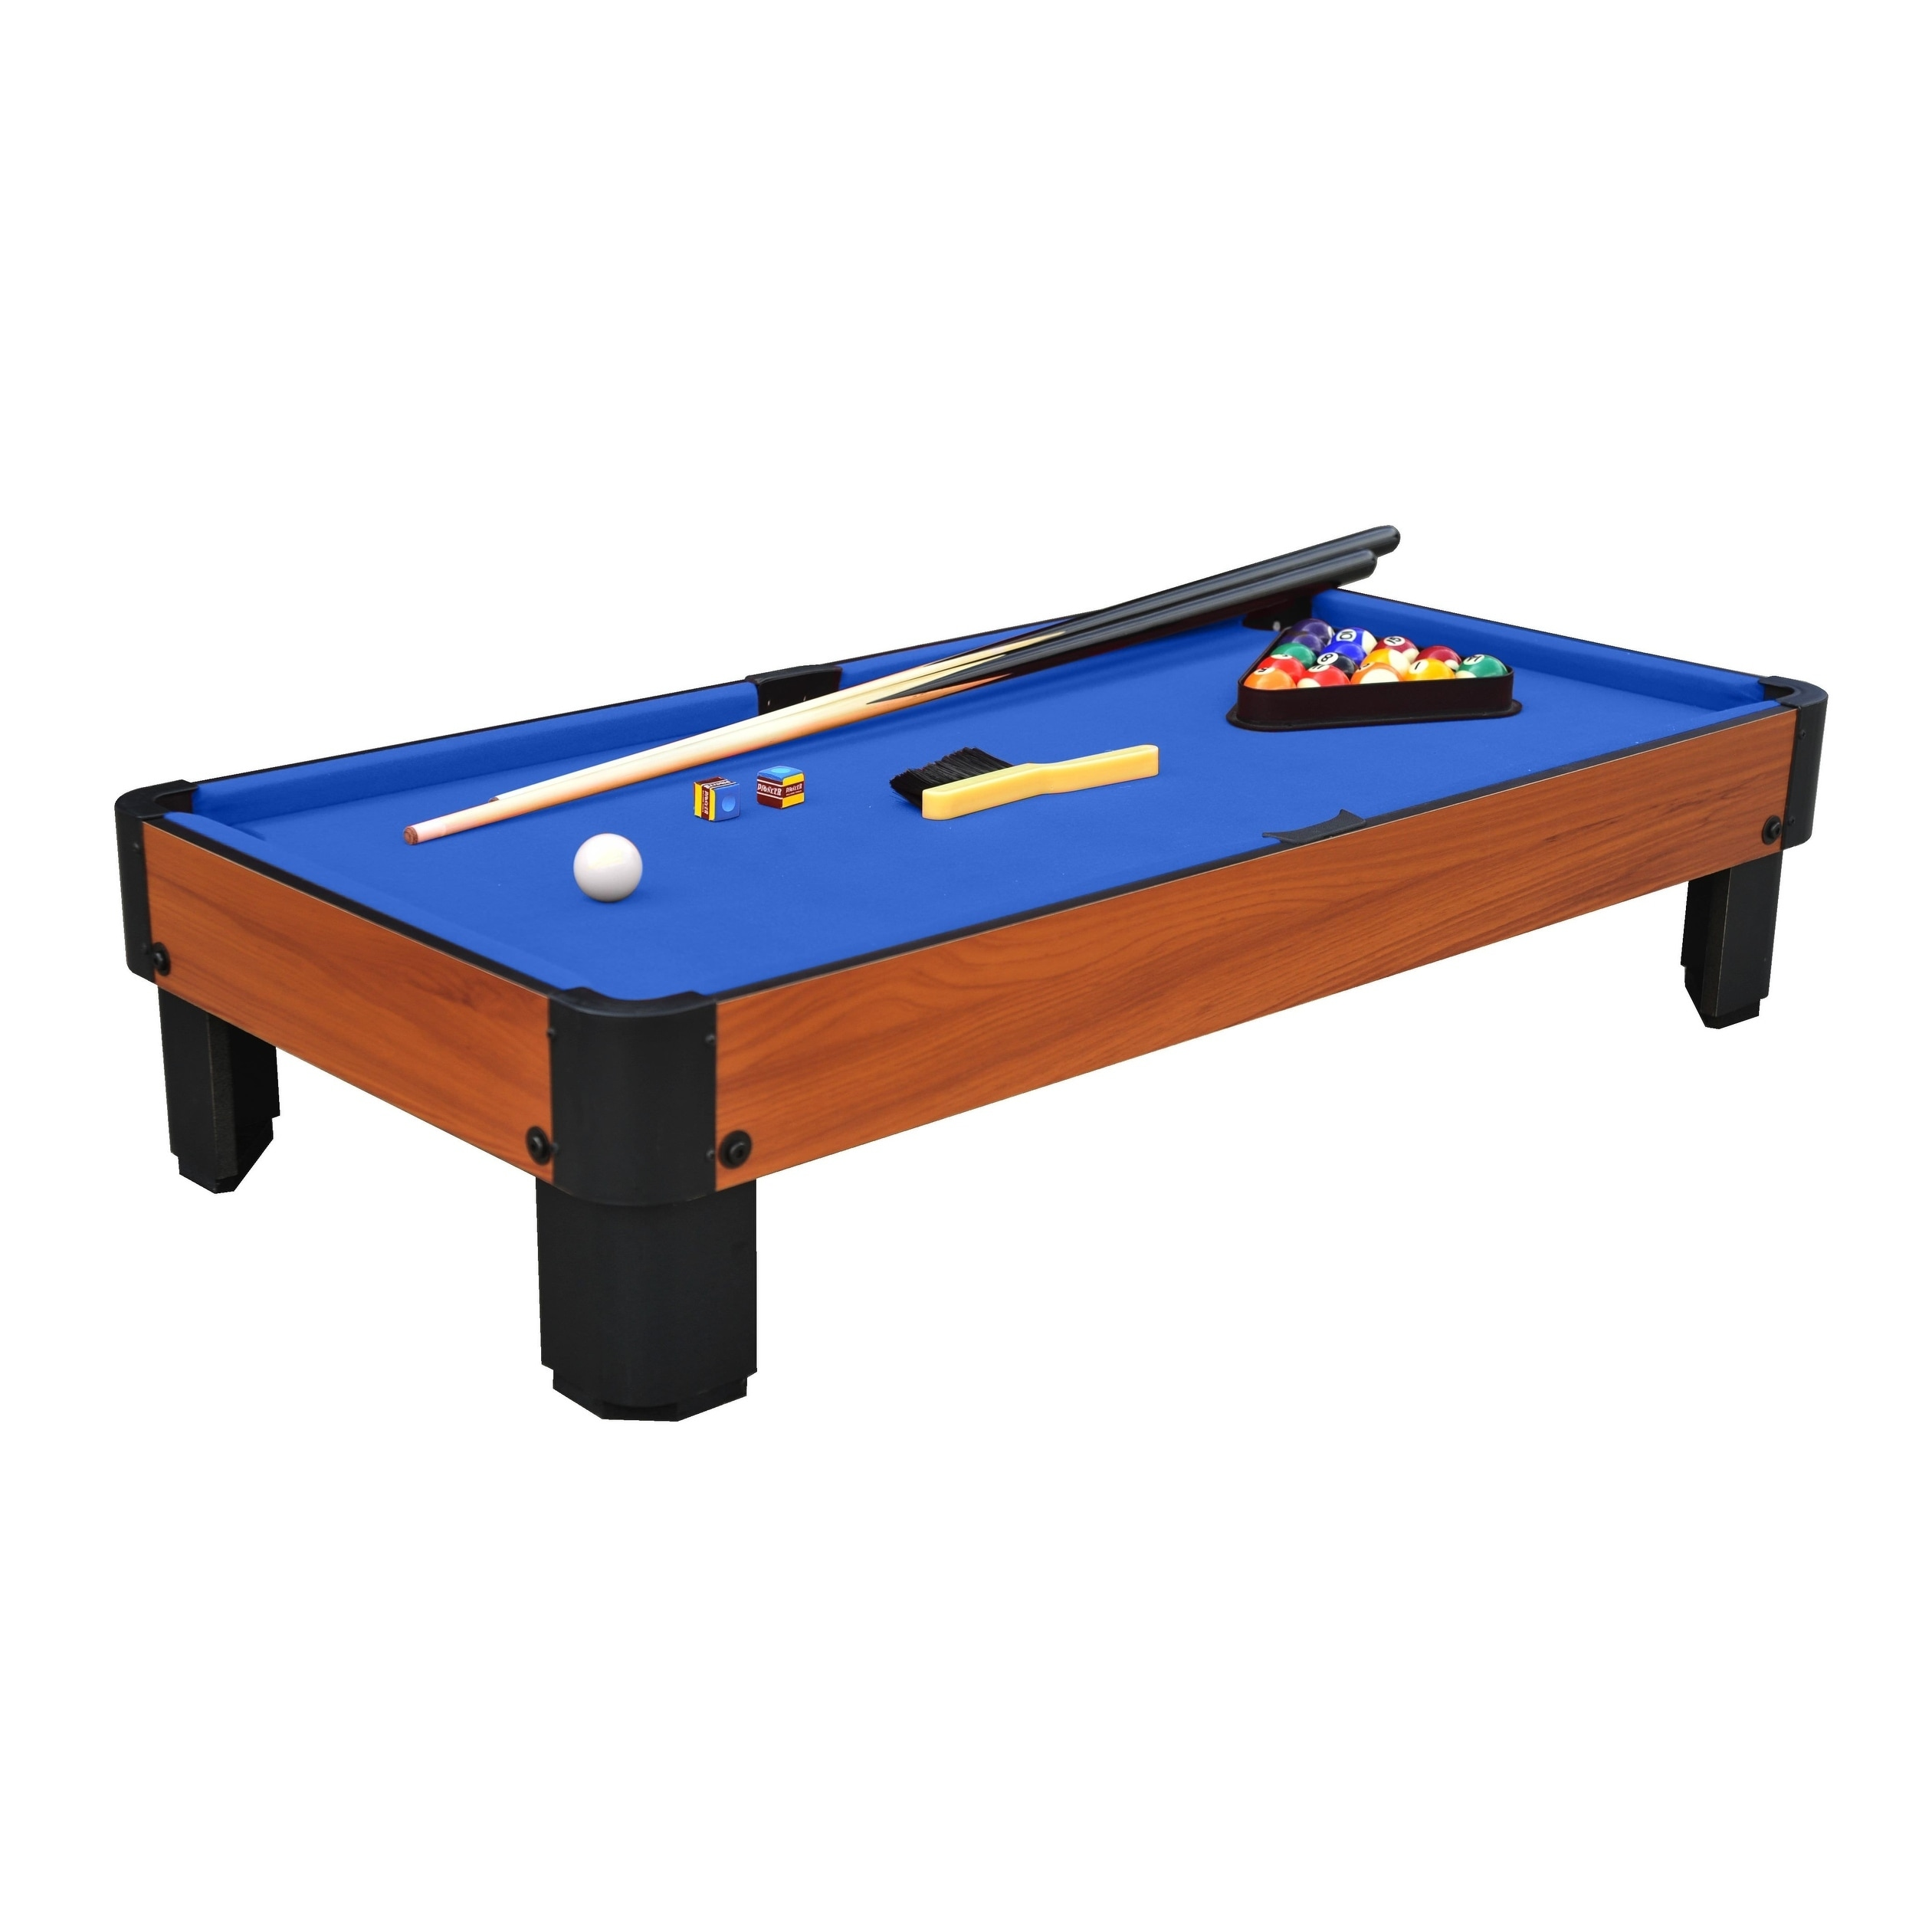 Terrific Details About Airzone Play 40 Table Top Pool Table Blue Home Interior And Landscaping Spoatsignezvosmurscom